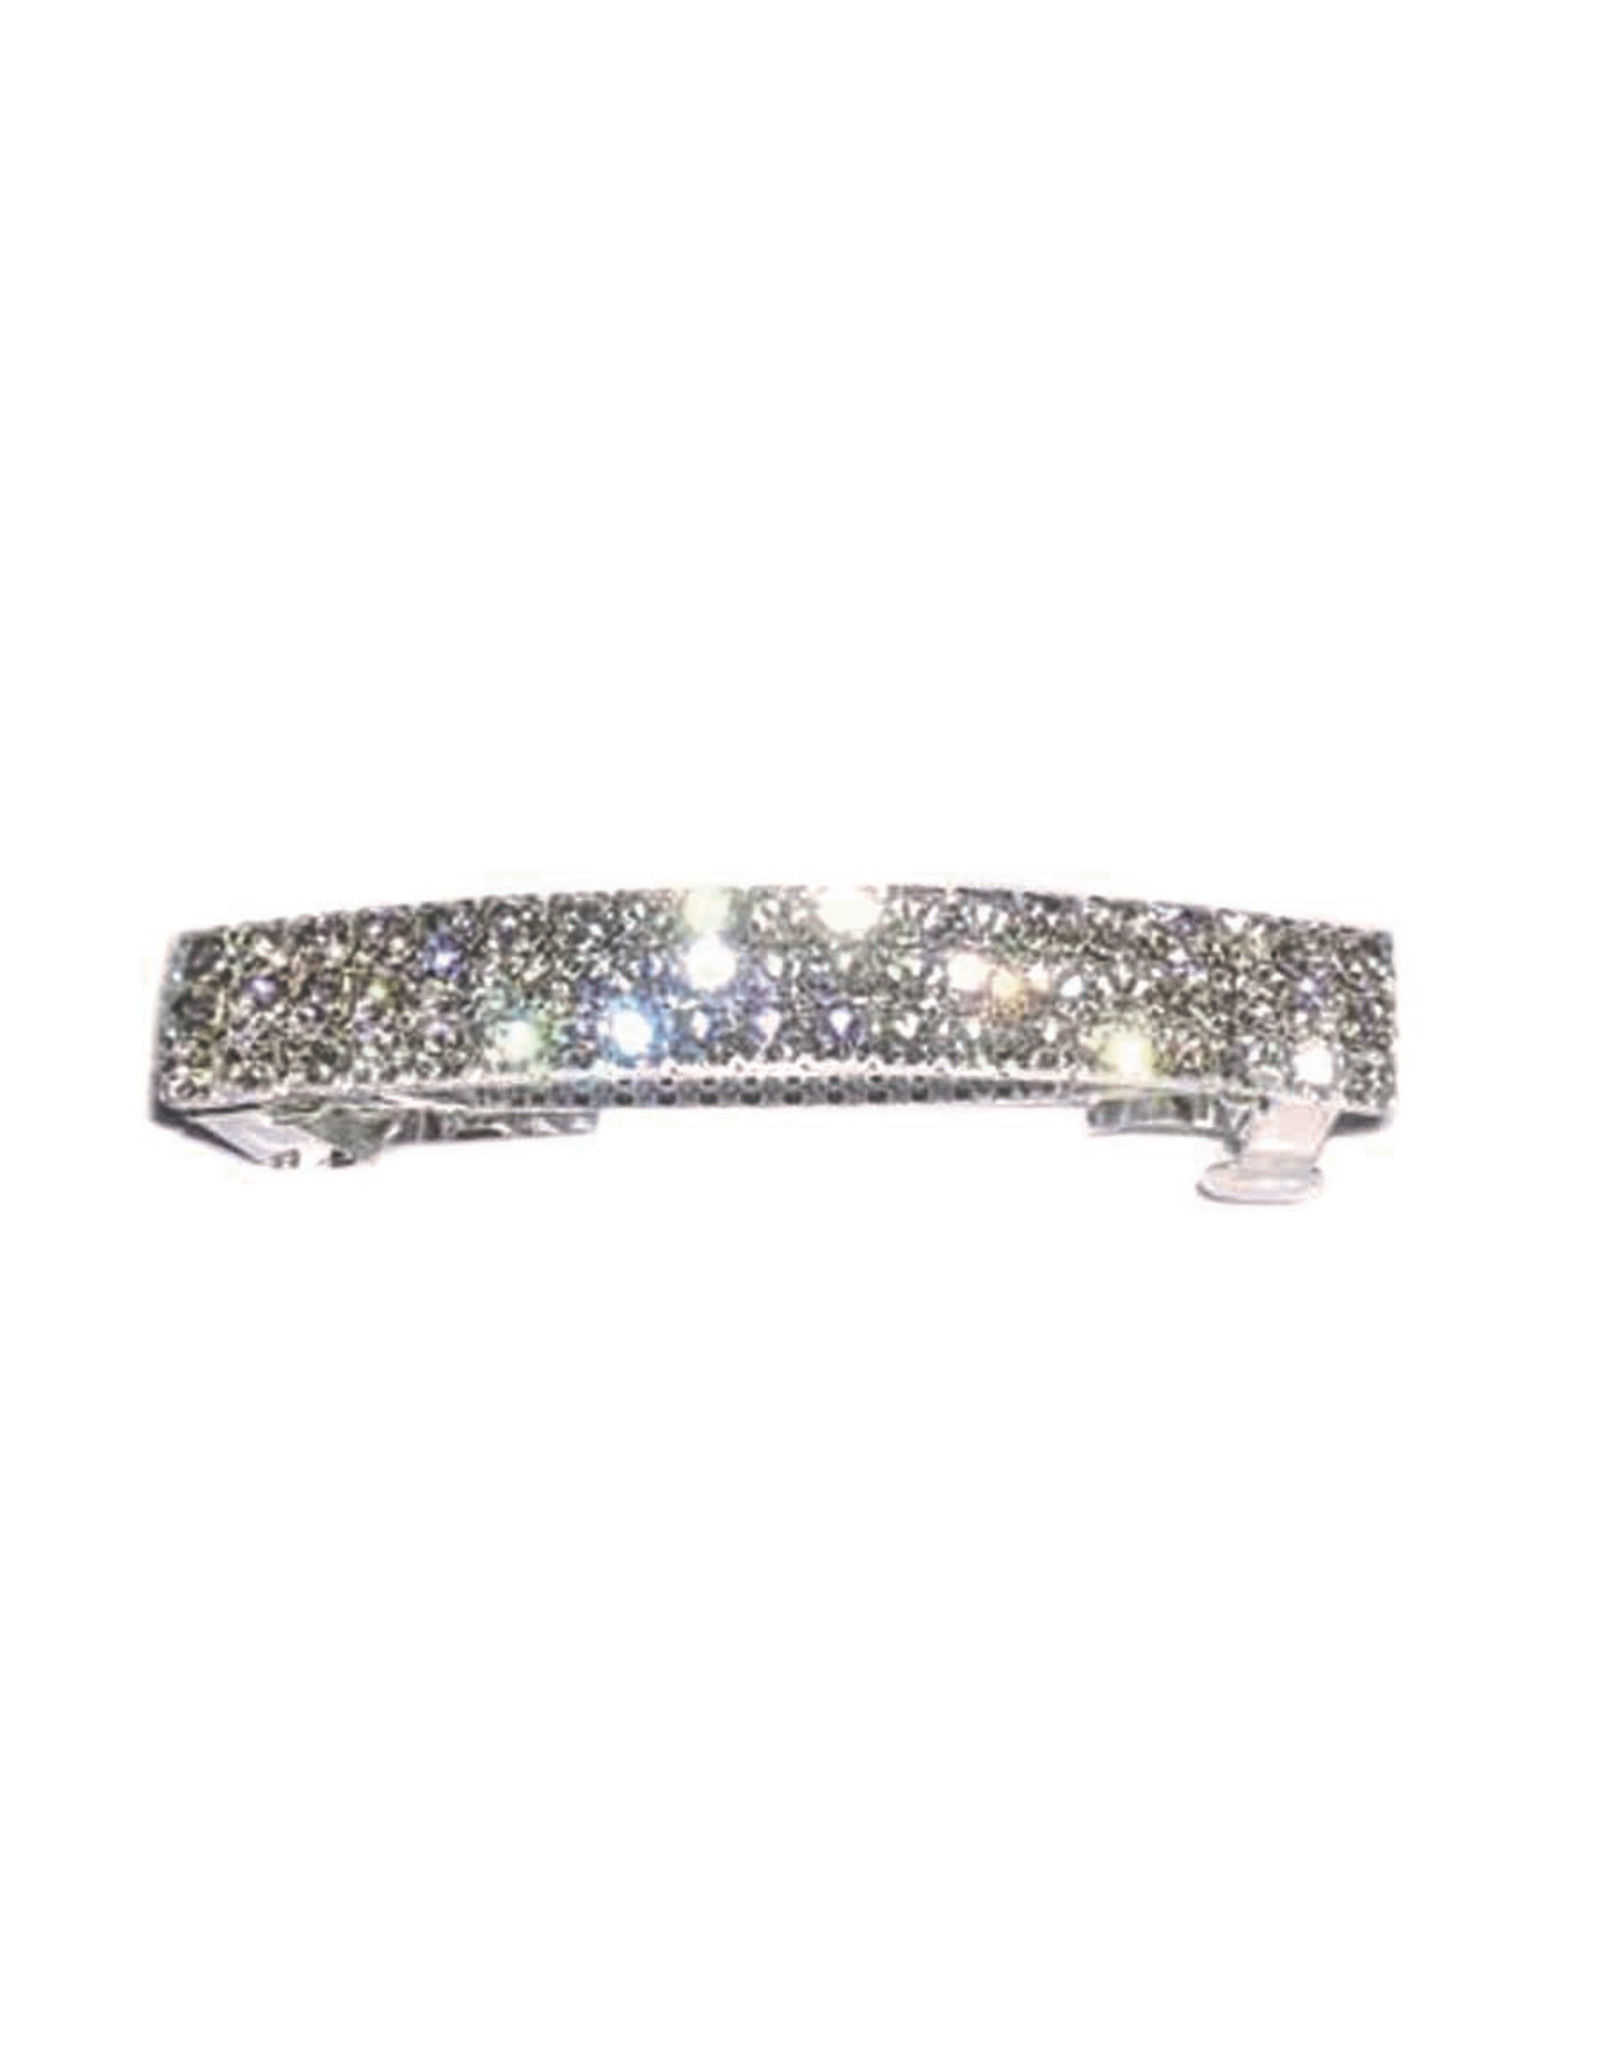 fH2 Multiple Rows Rhinestone Barrette